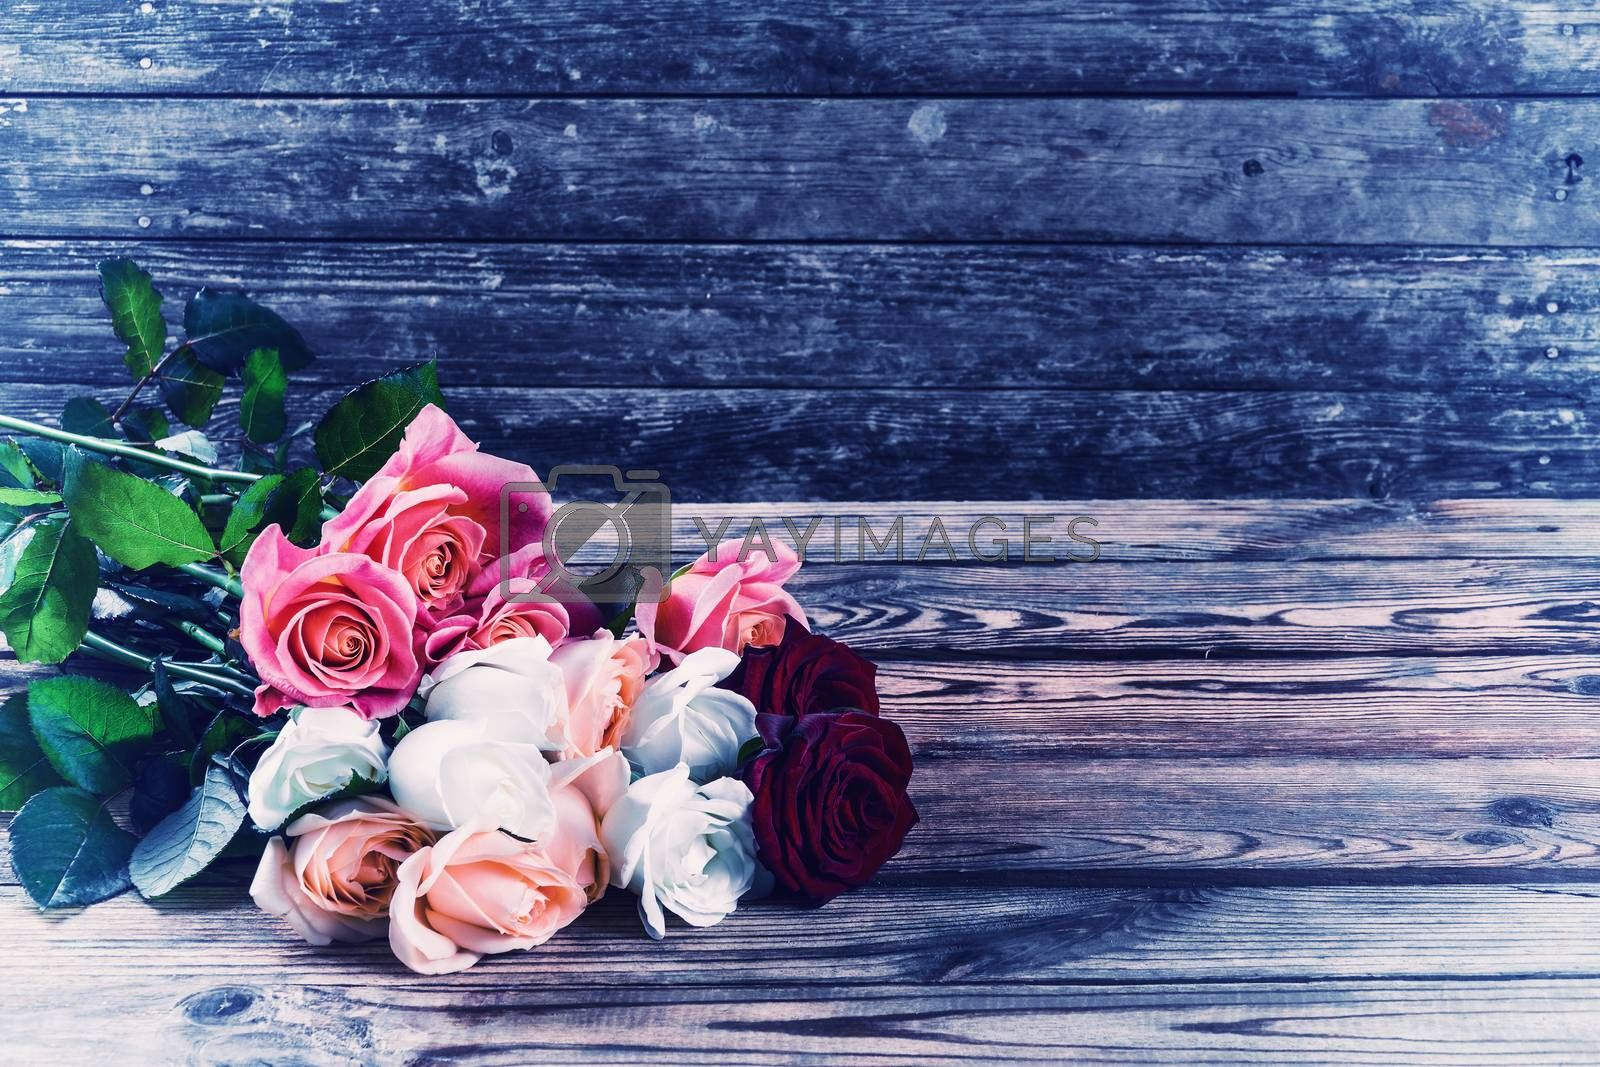 Vintage beautiful bouquet of flowers roses on rustic wooden table